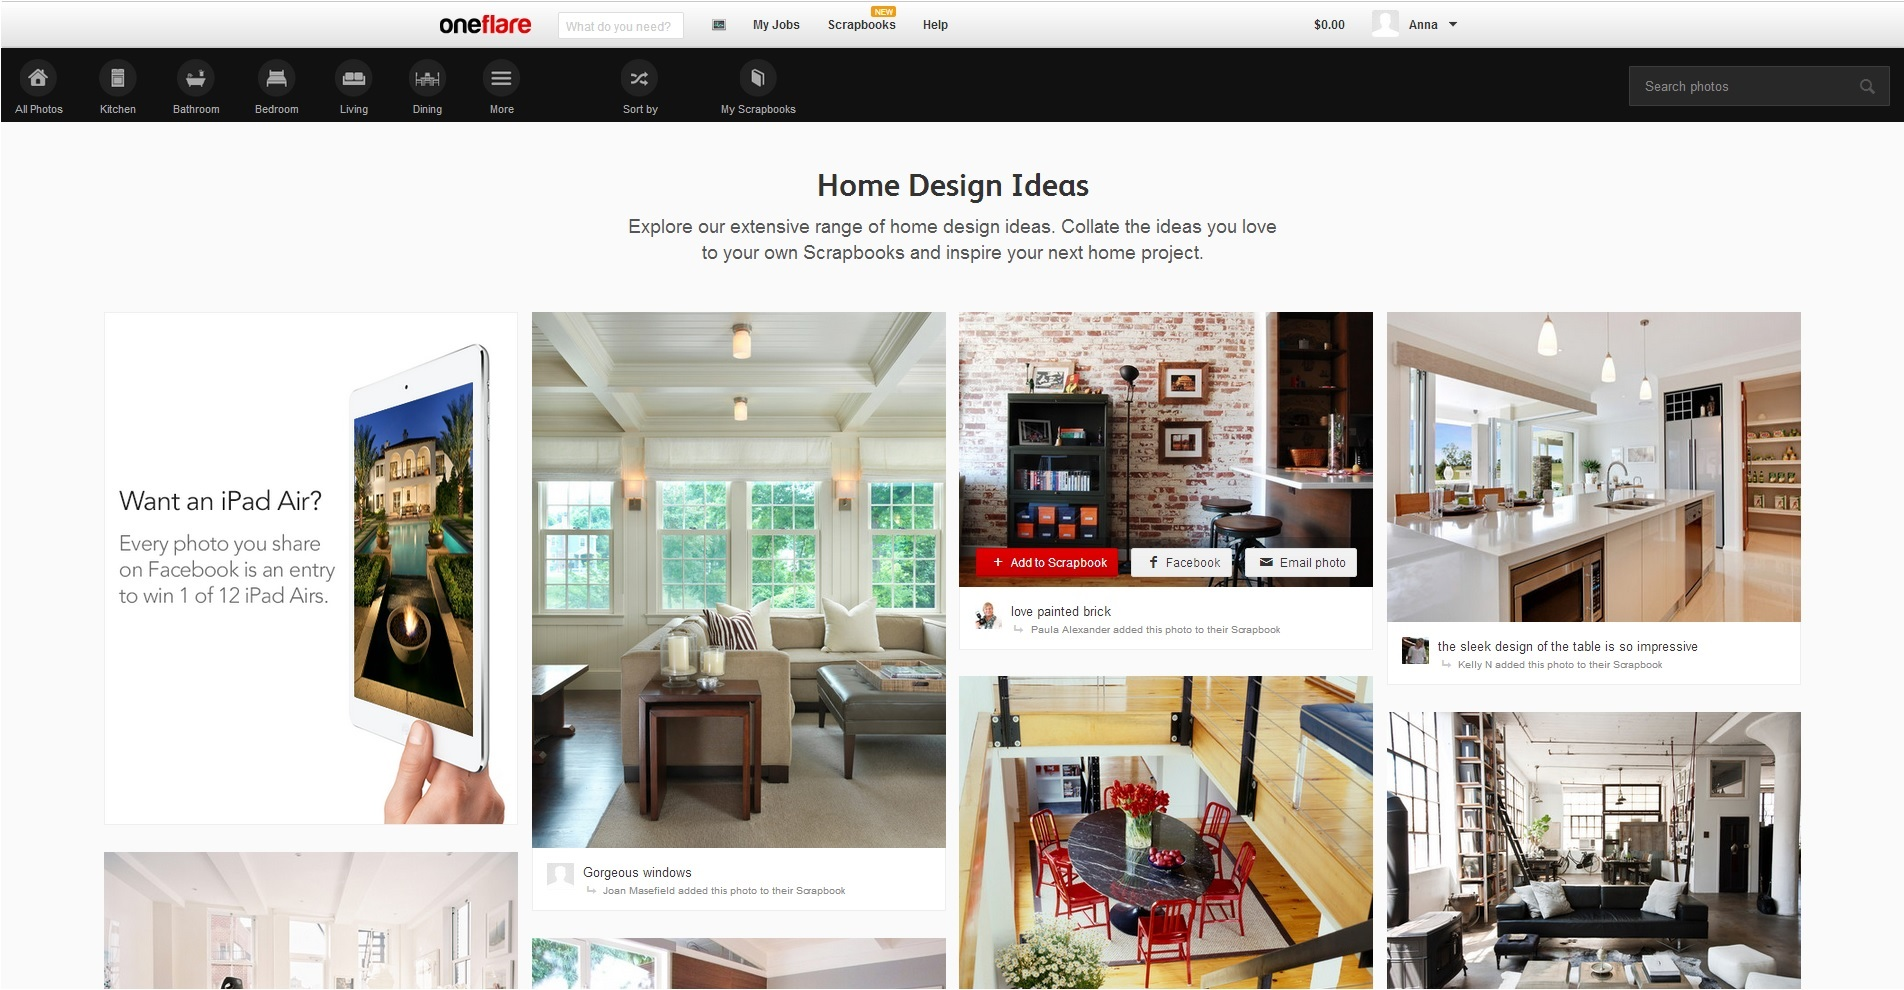 Pinterest Meets Online Directory With New Oneflare